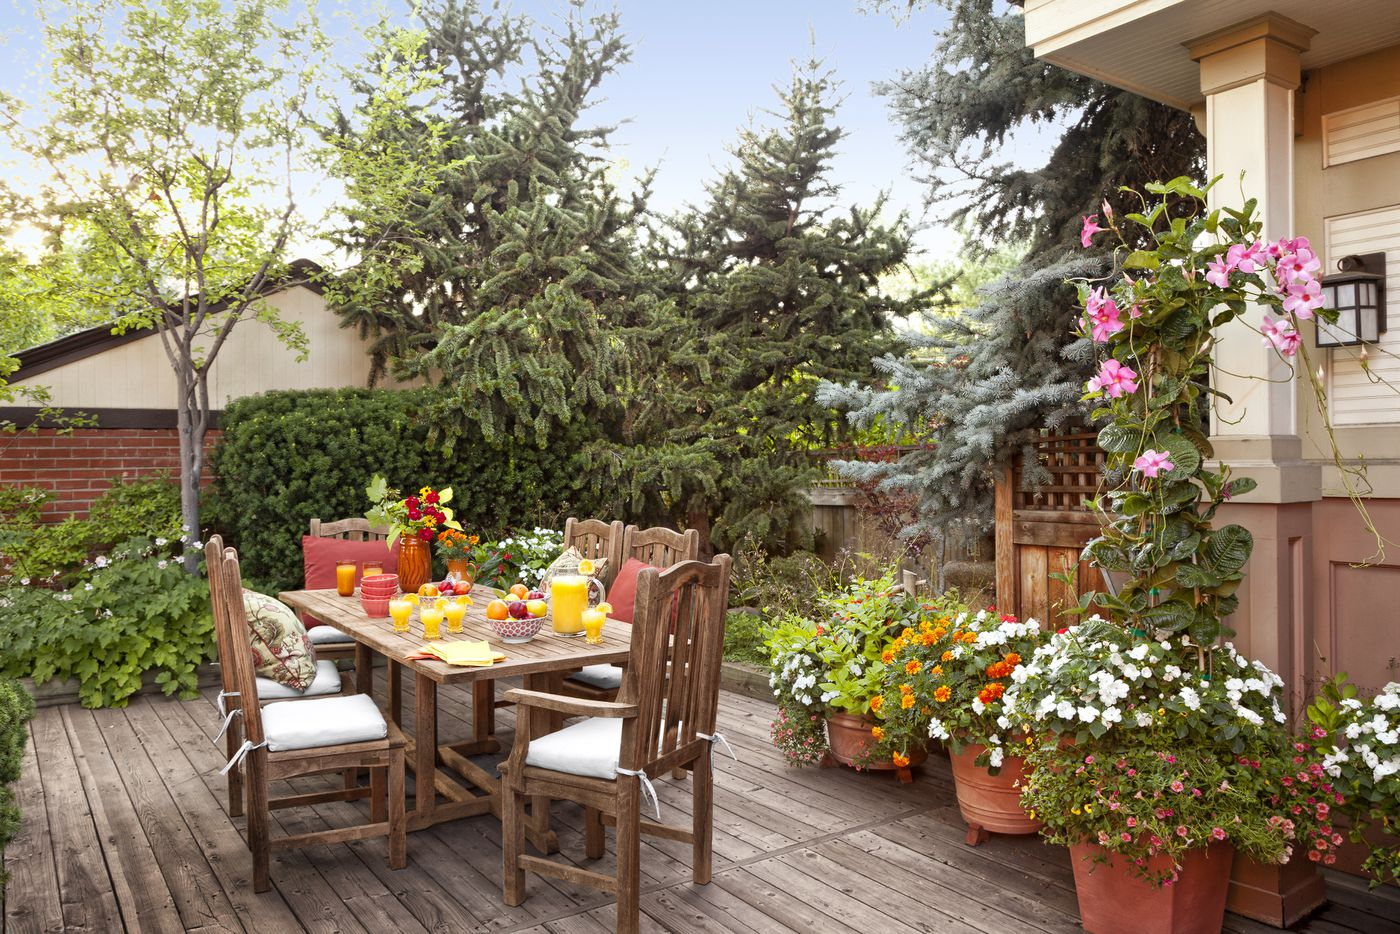 8 Lessons On Stretching A Small Yard This Old House